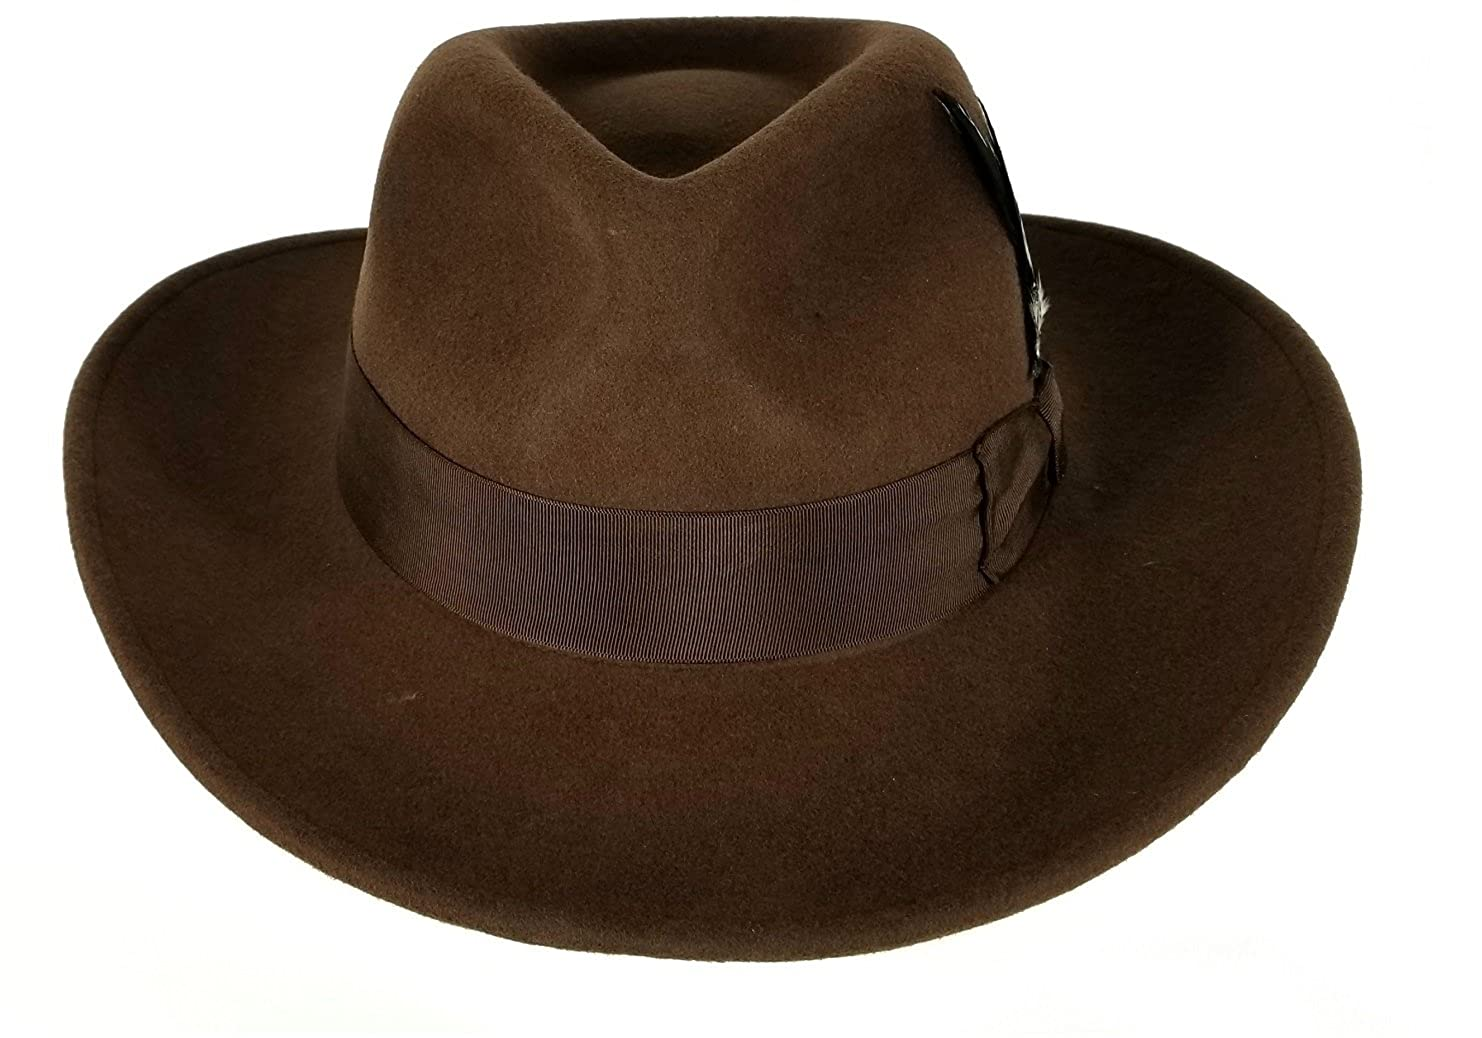 ... get mens 100 soft crushable wool felt indiana jones style cowboy fedora  hats 71d97 7016b d98f76dae9e0